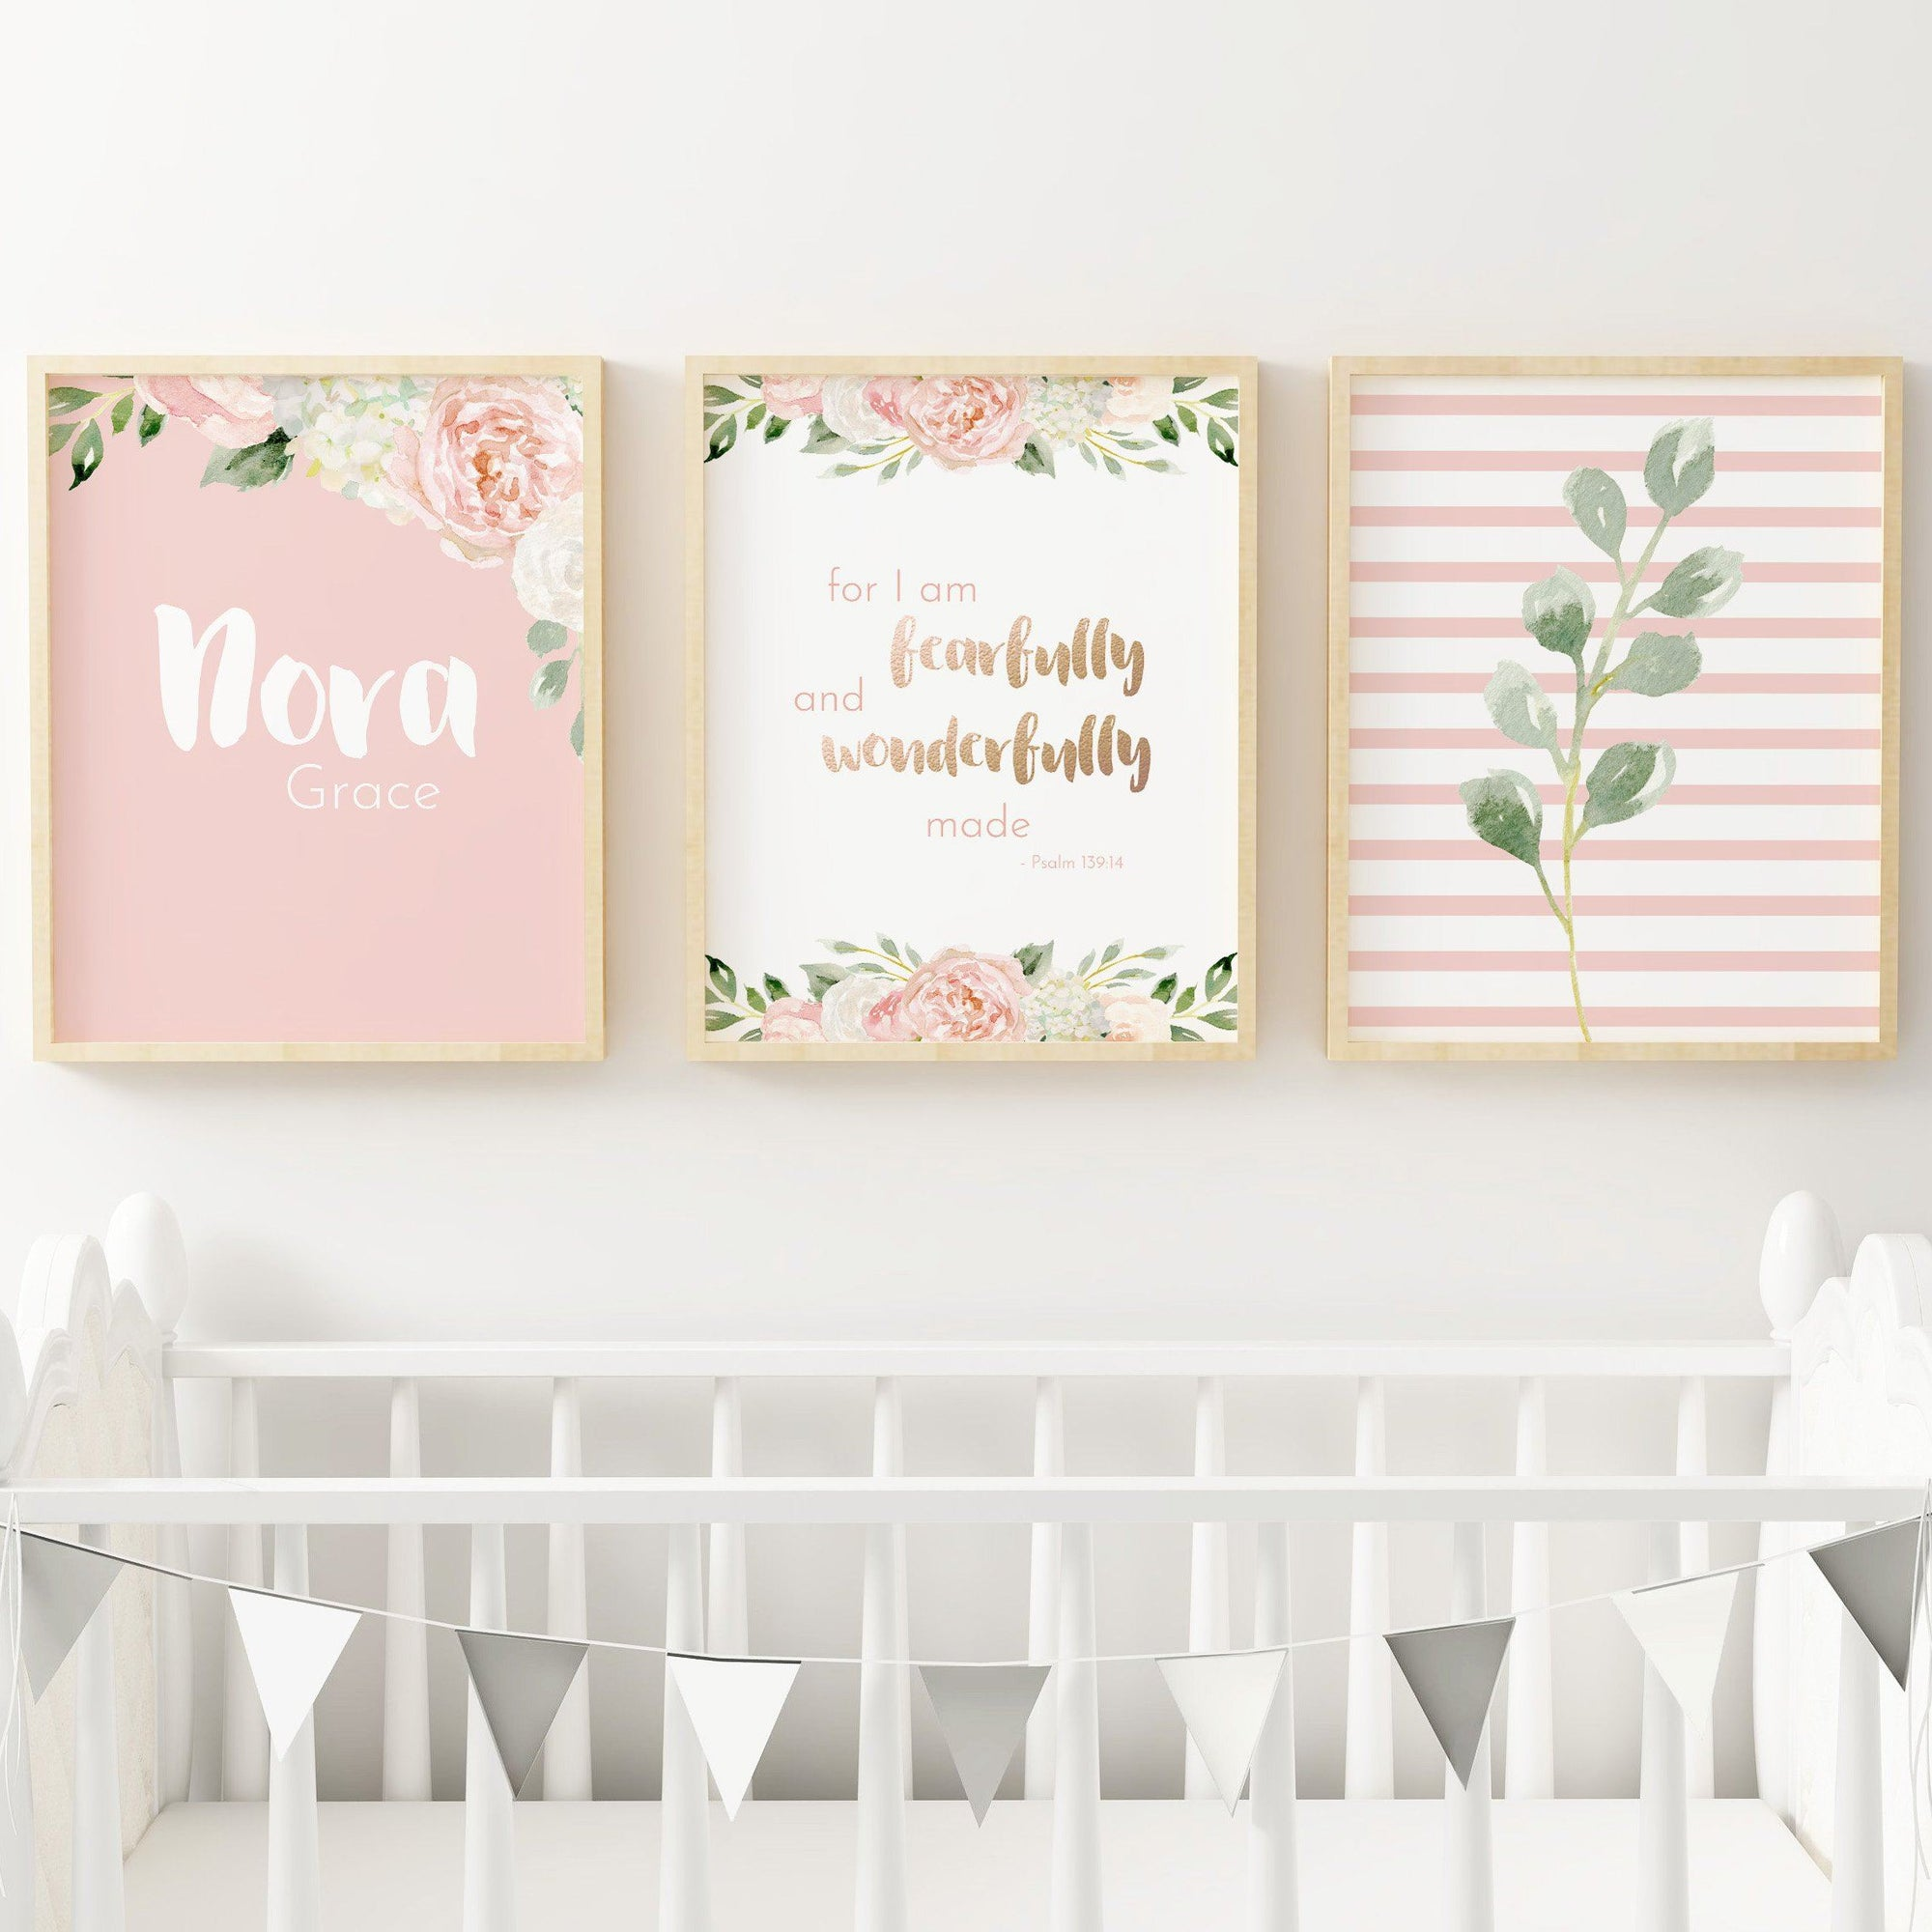 Dark Blush #4 // Set of 3 Prints | Nursery Wall Decor for a Girl | The Graceful Goose